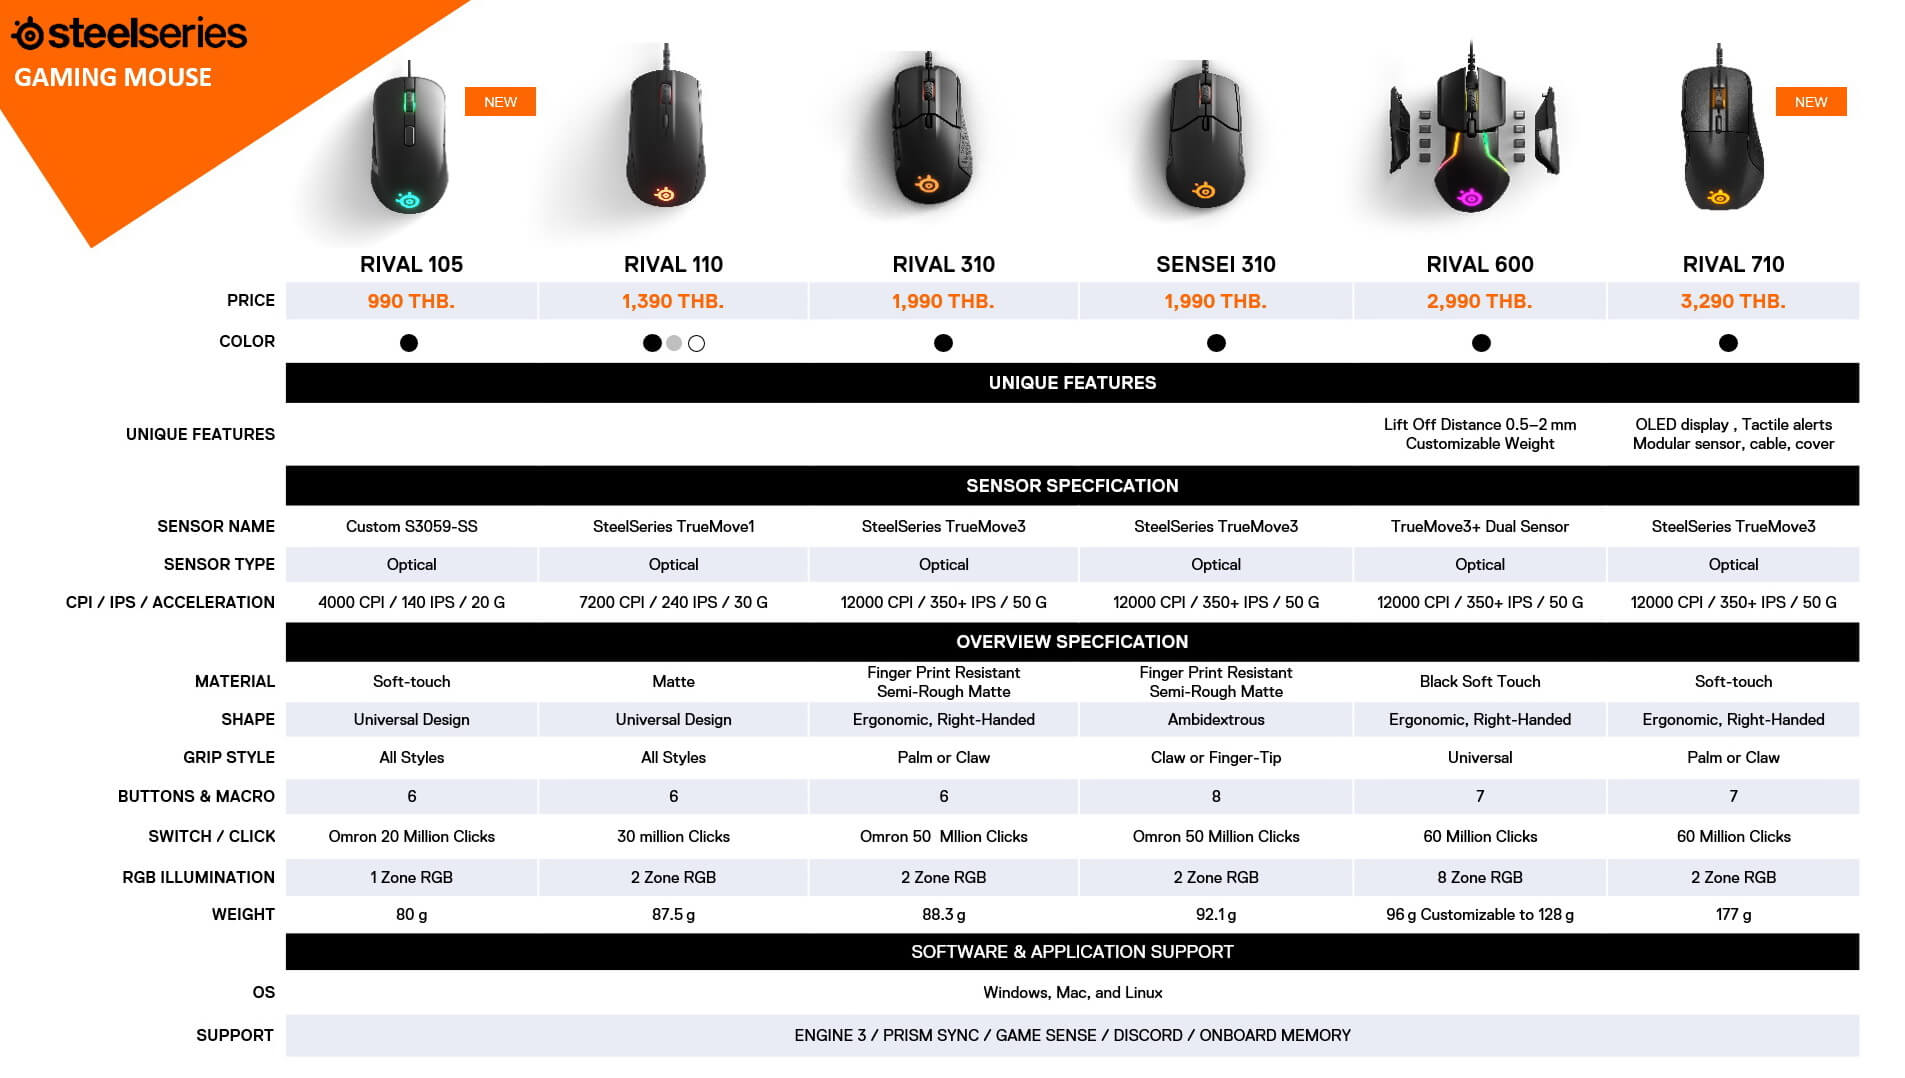 COMPARE SteelSeries MOUSE